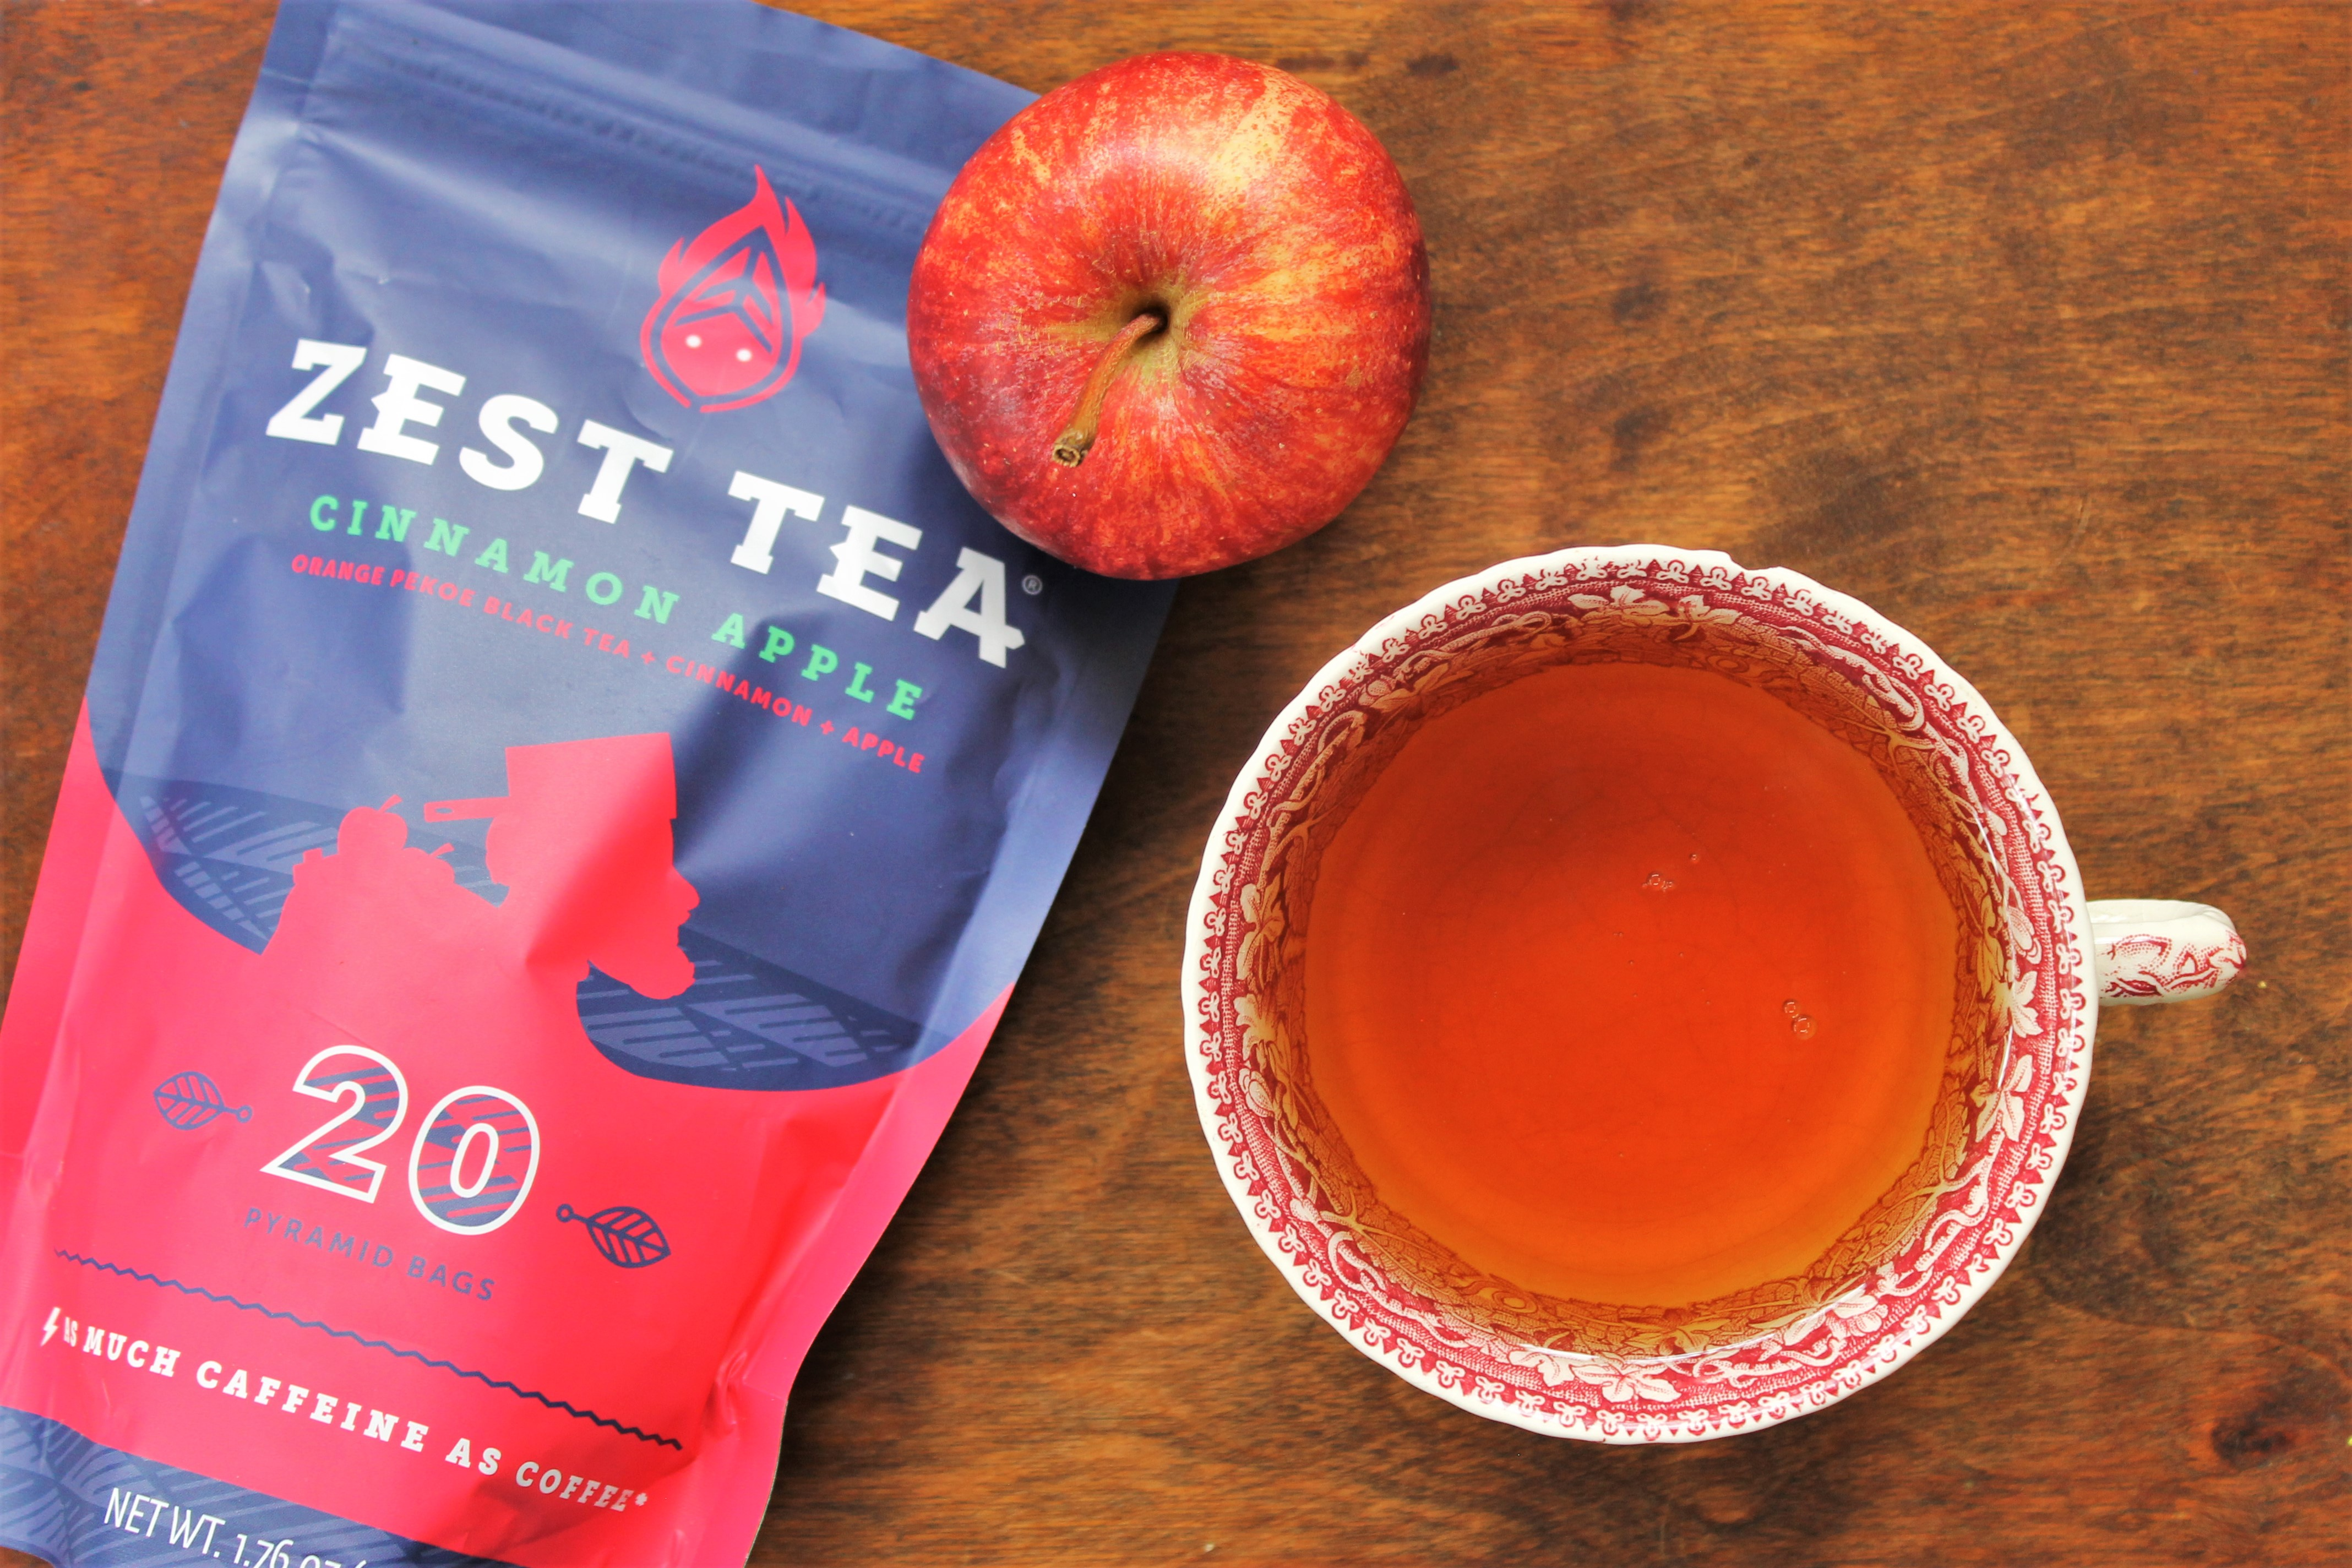 Zest Tea Cinnamon Apple Review